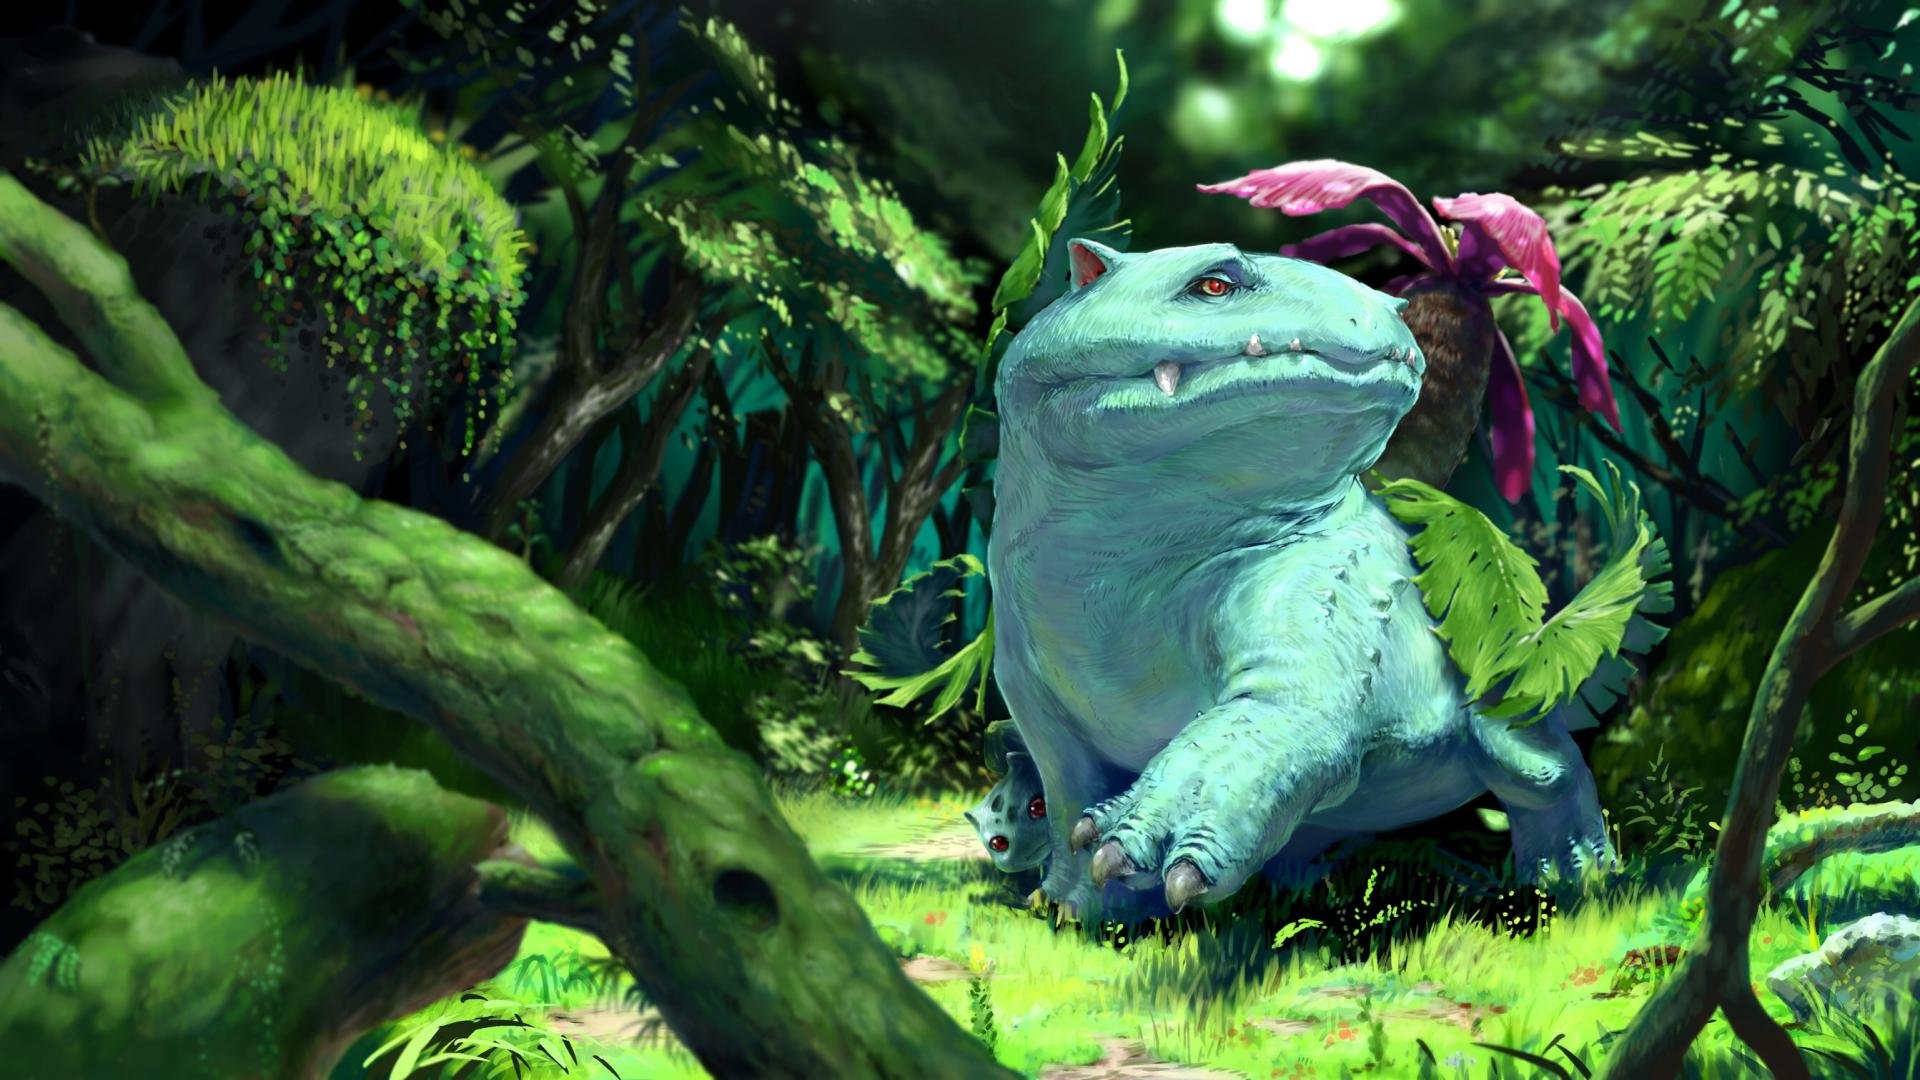 Download hd 1920x1080 Venusaur (Pokemon) PC background ID:278816 for free